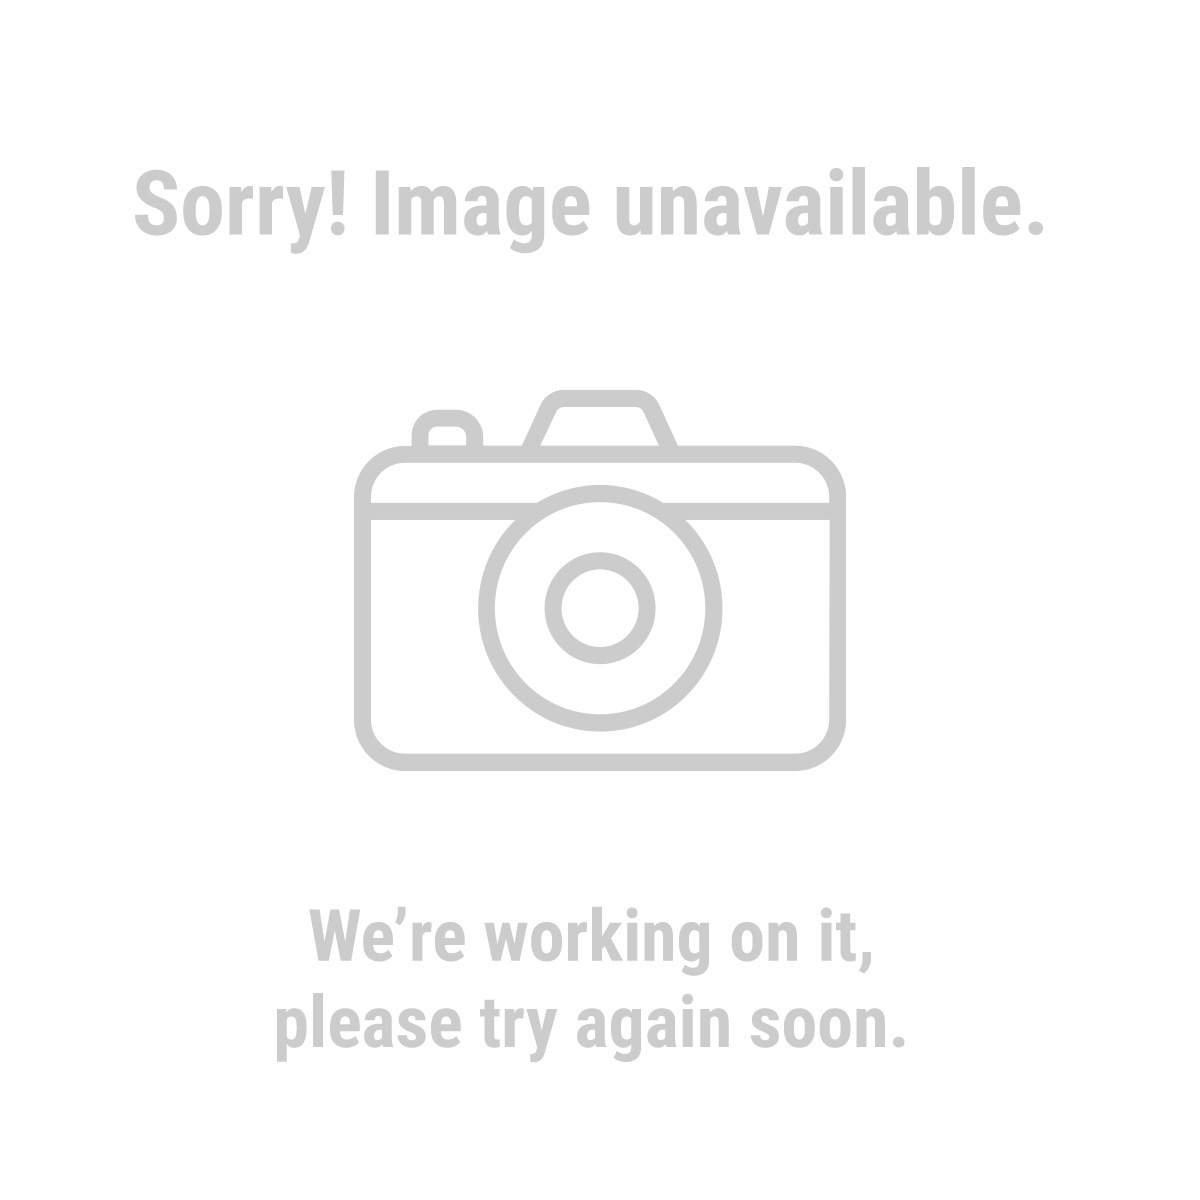 Pittsburgh Automotive 46781 4 Piece Door Skin Repair Kit